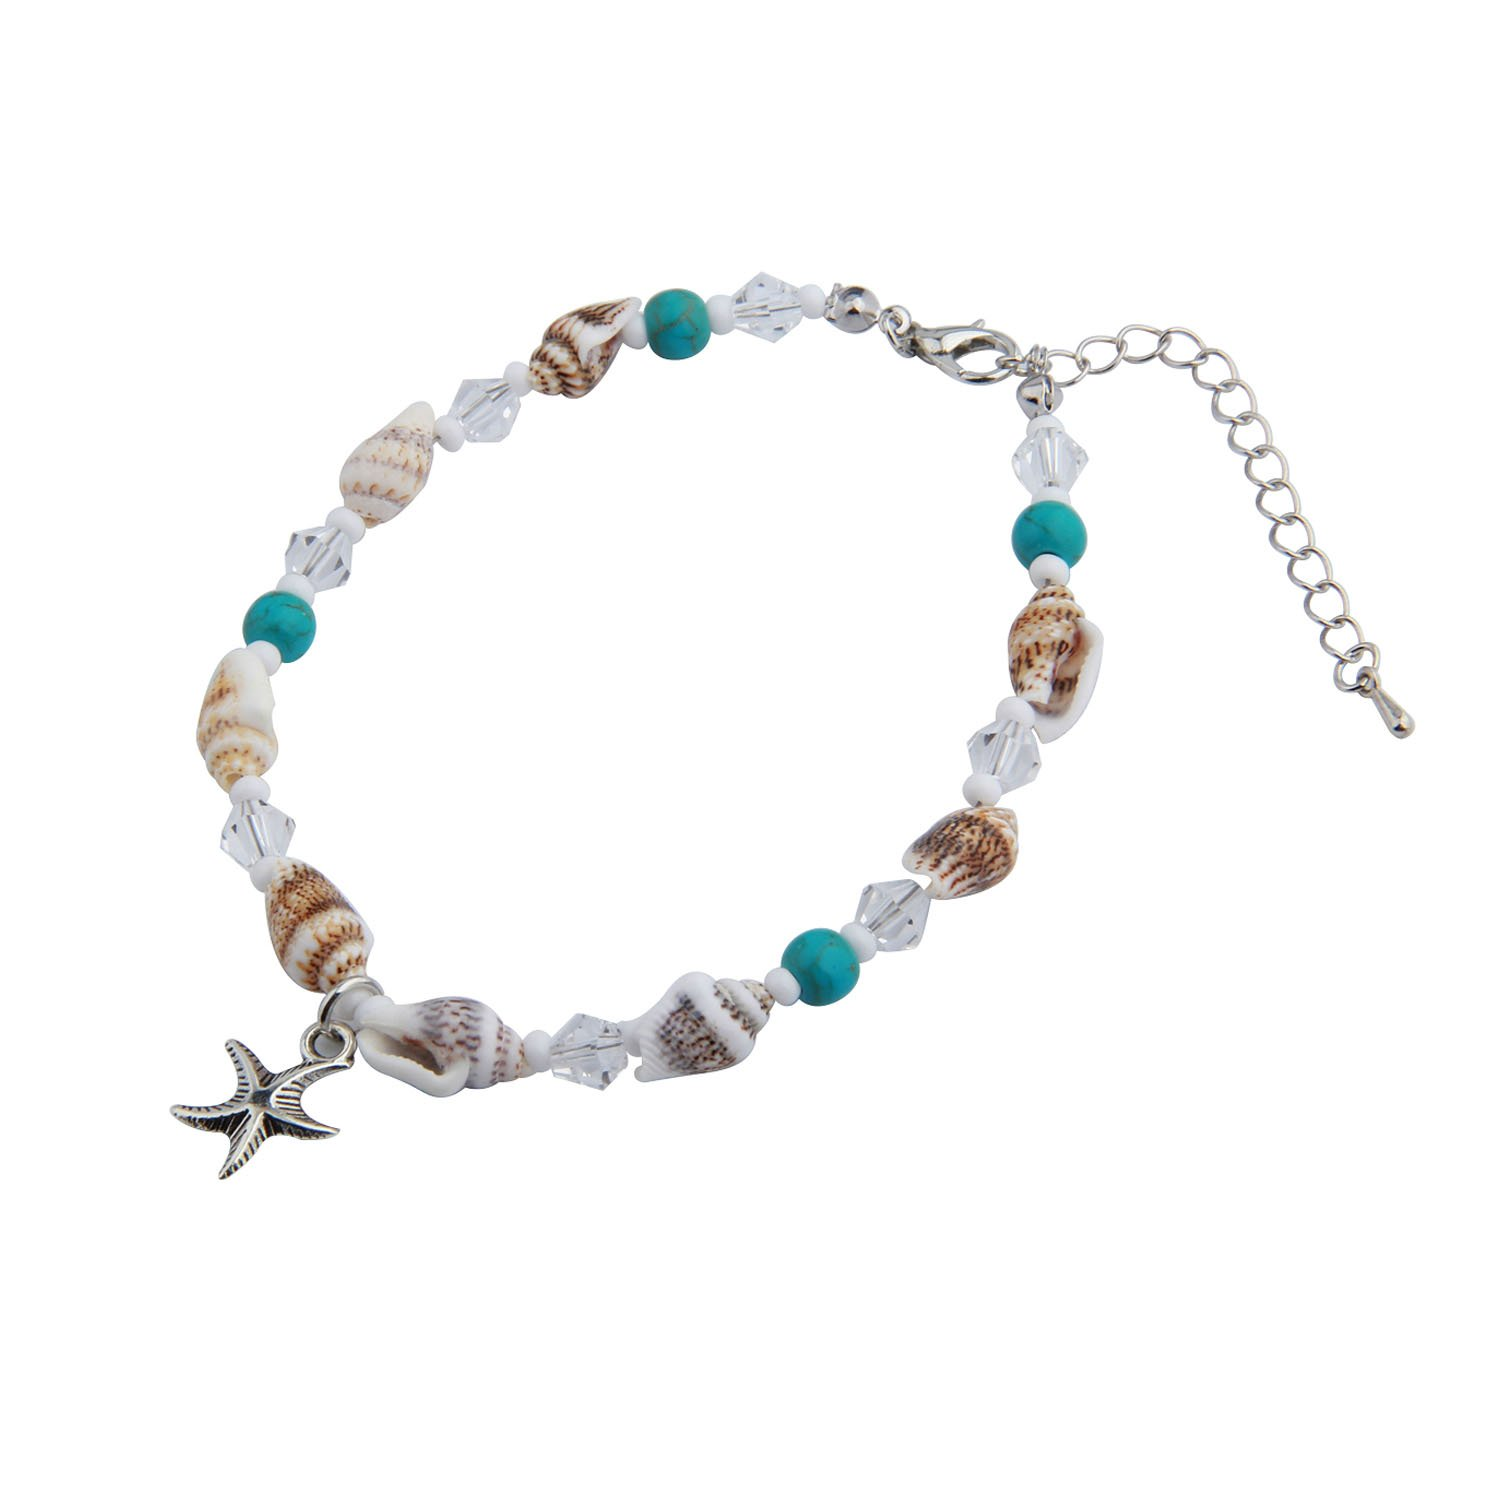 RQIER Starfish Themed Anklet Bracelet Adjustable Starfish Shell Bead Chain Ankle Bracelet Hawaiian Style Beach Jewelry (small shell)